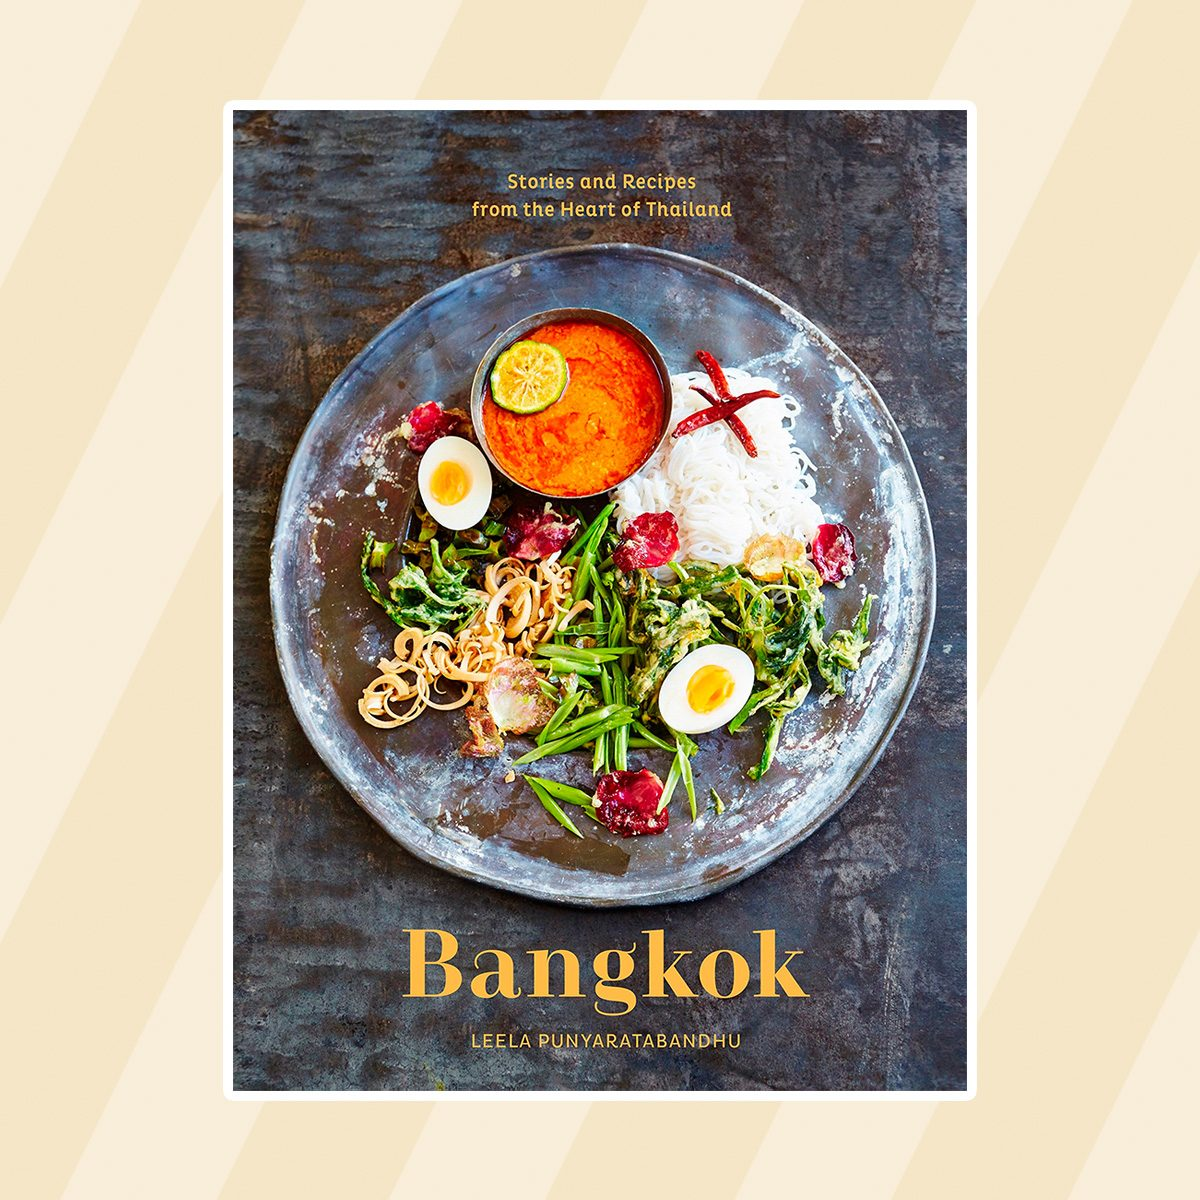 Bangkok: Recipes and Stories from the Heart of Thailand [A Cookbook]